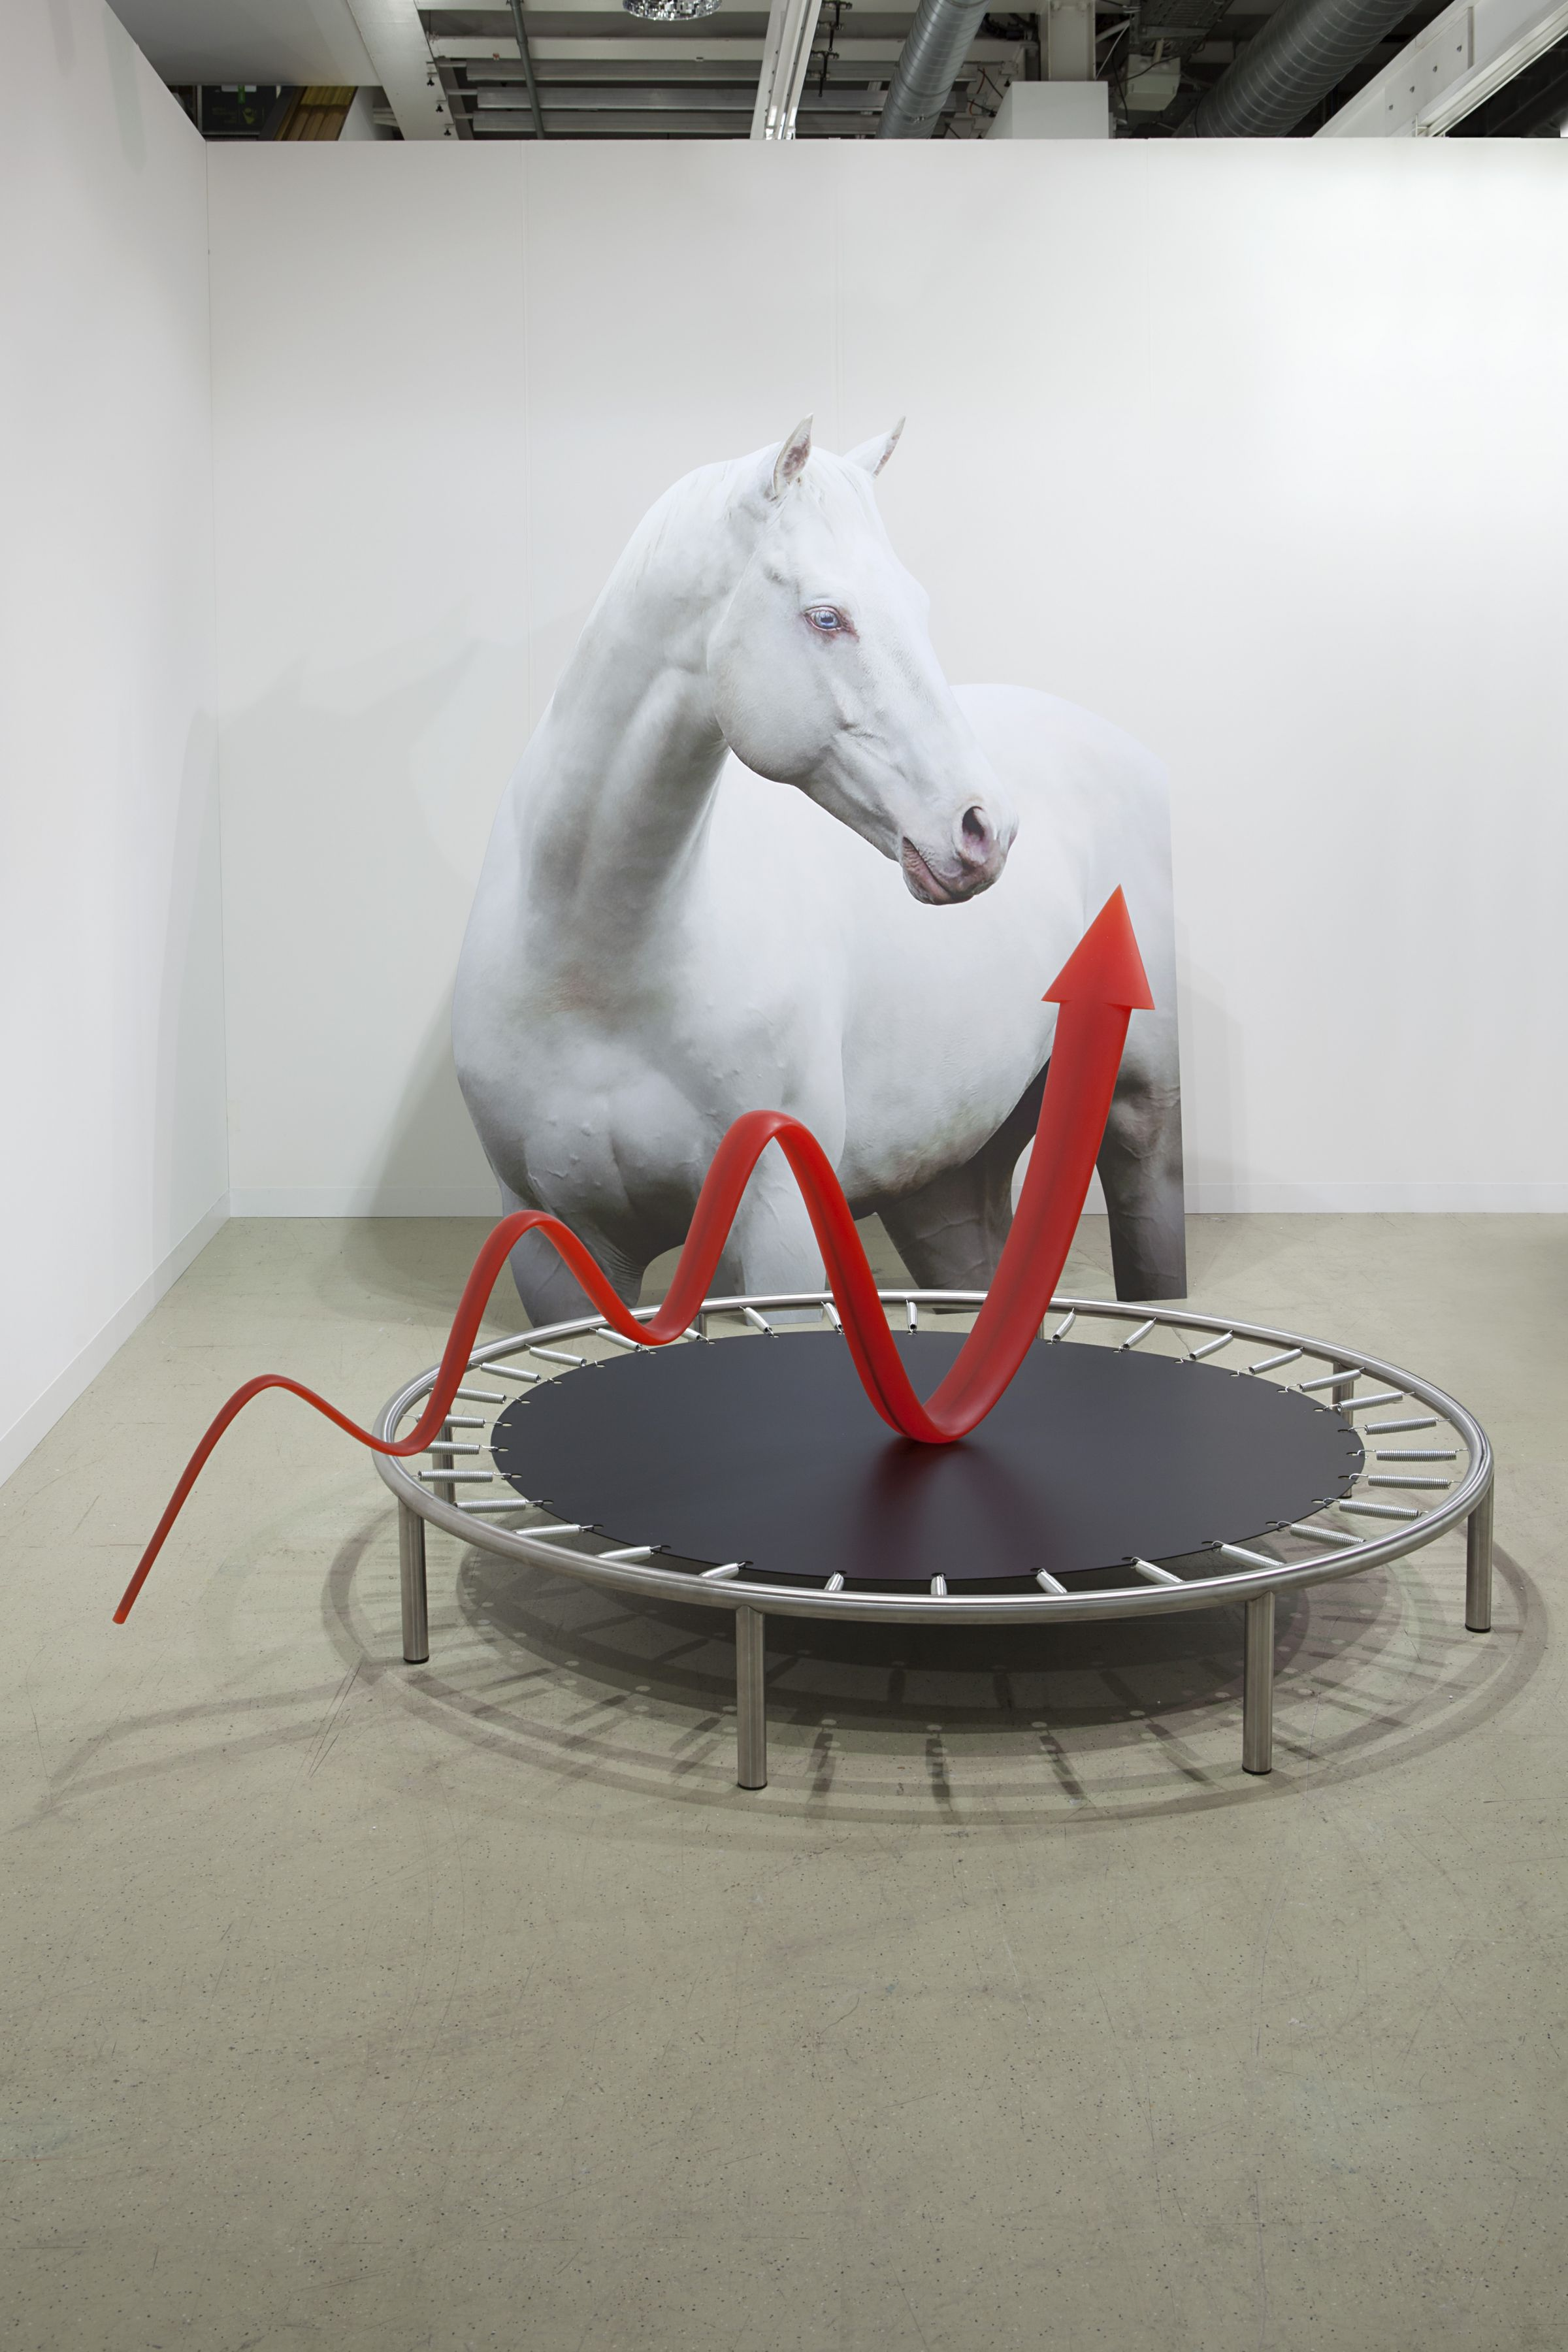 Pattern of Activation, 2014 digital print on aluminum, cutout display; polyurethane, steel; aluminum, stainless steel cutout display, 250 x 200 x 35 cm trampoline and arrow sculpture, 145 x 250 x 200 cm